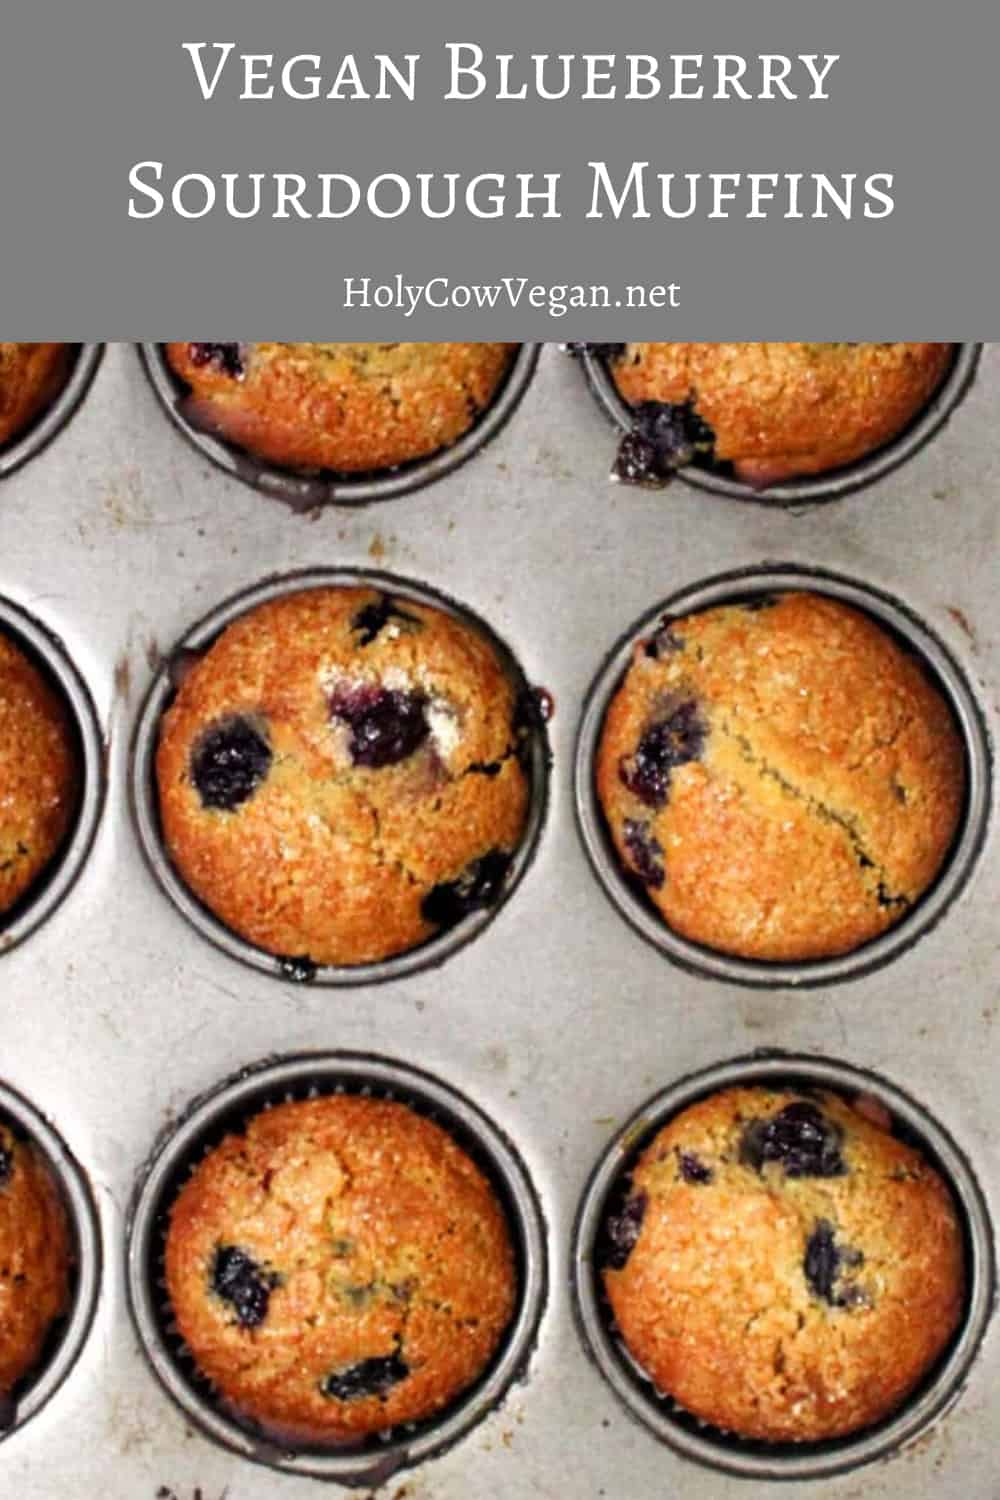 Vegan Blueberry Sourdough Muffins in a baking tin with pockets of blueberries